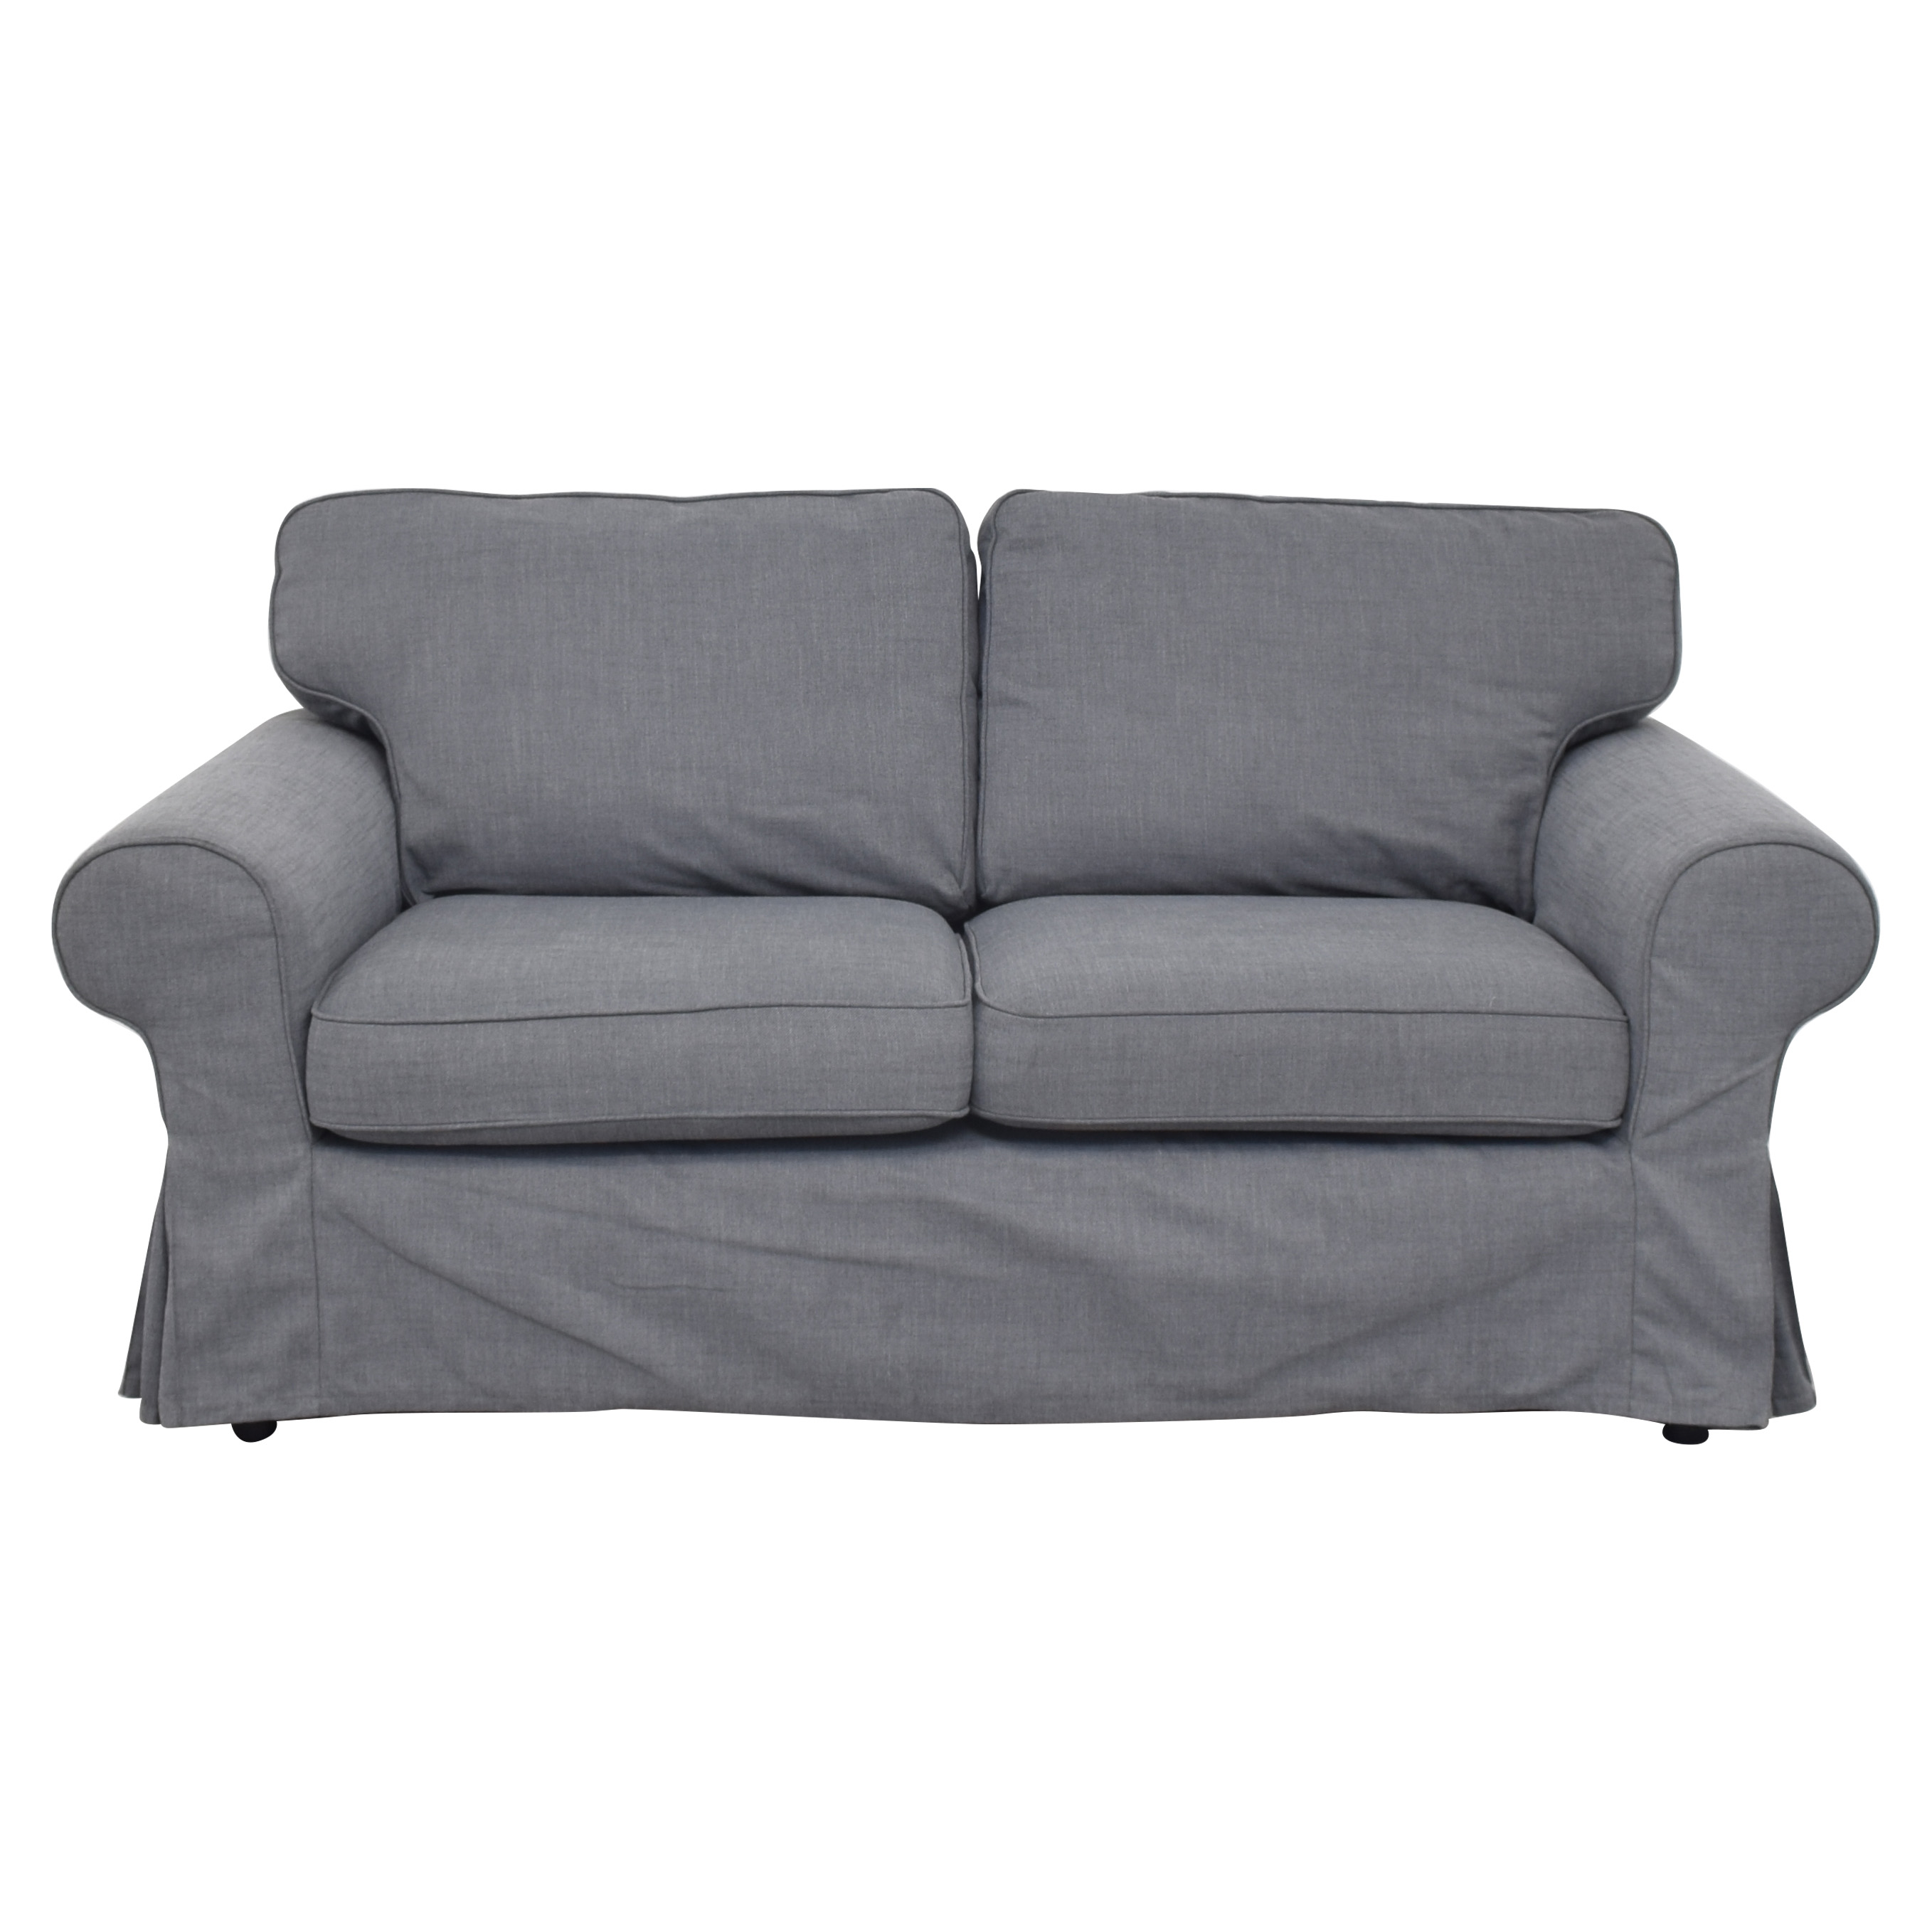 IKEA Ikea Ektorp Loveseat on sale